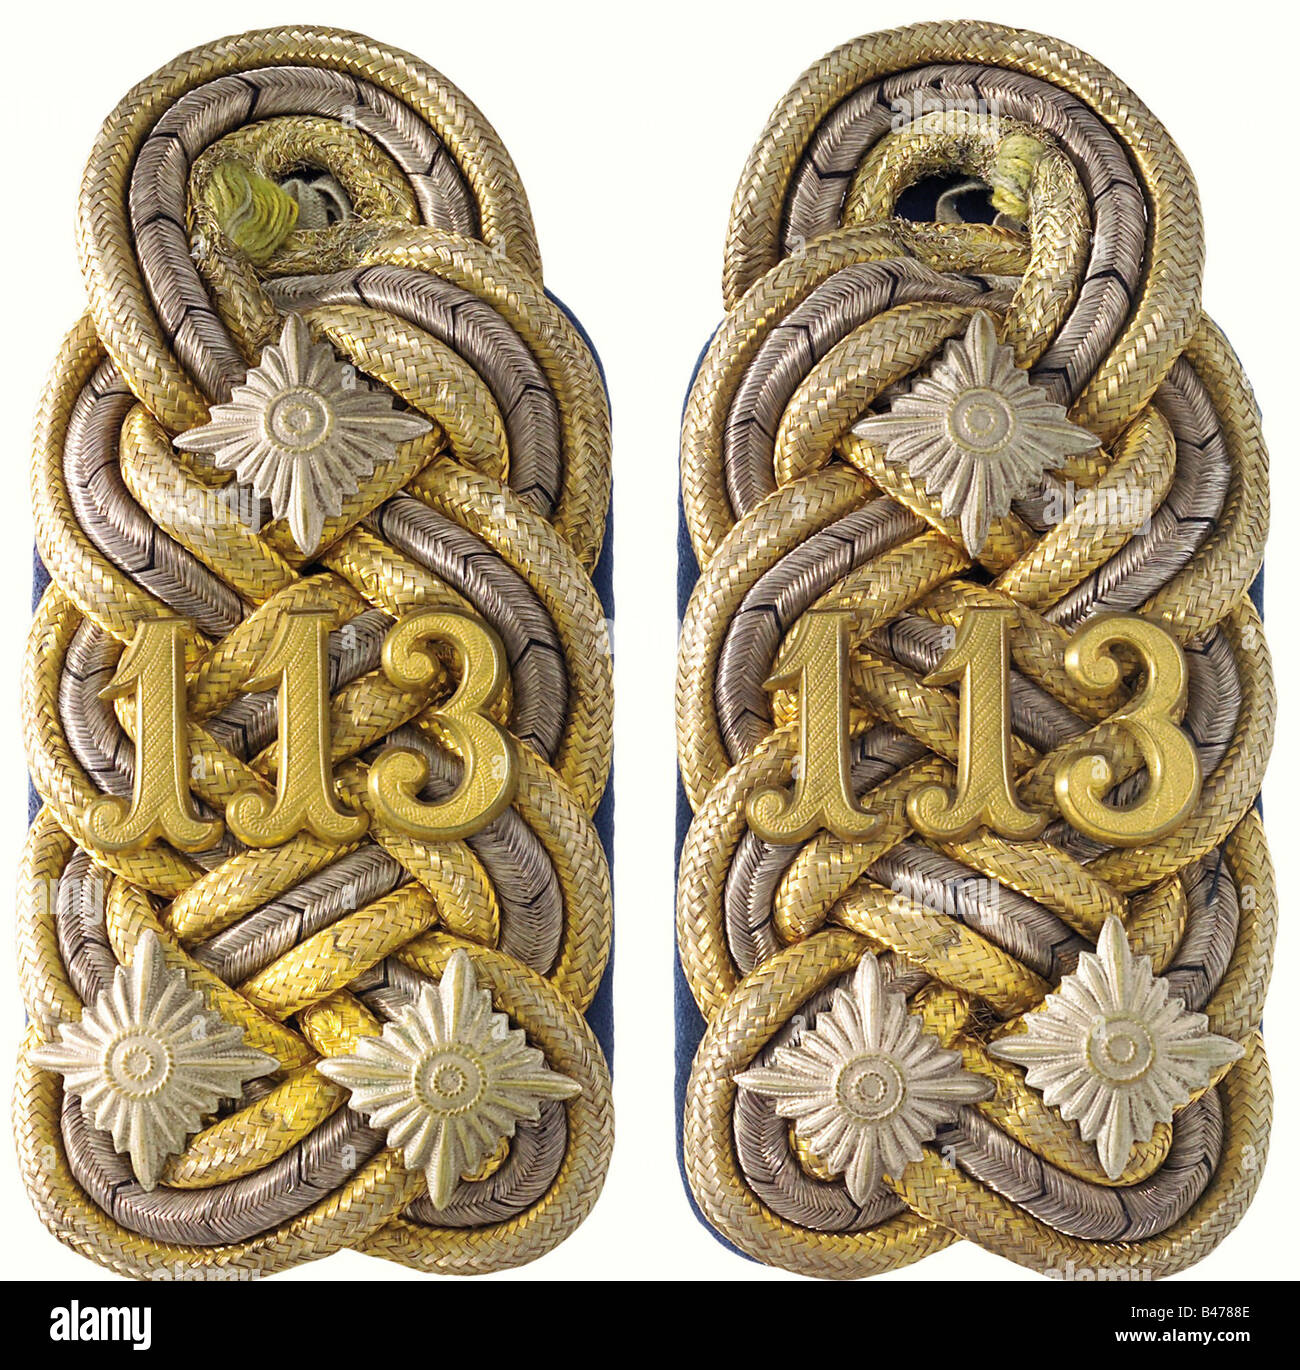 Baden: A pair of shoulder boards worn by Erb-Großherzog (crown prince), later Grand Duke, Friedrich II, in - Stock Image